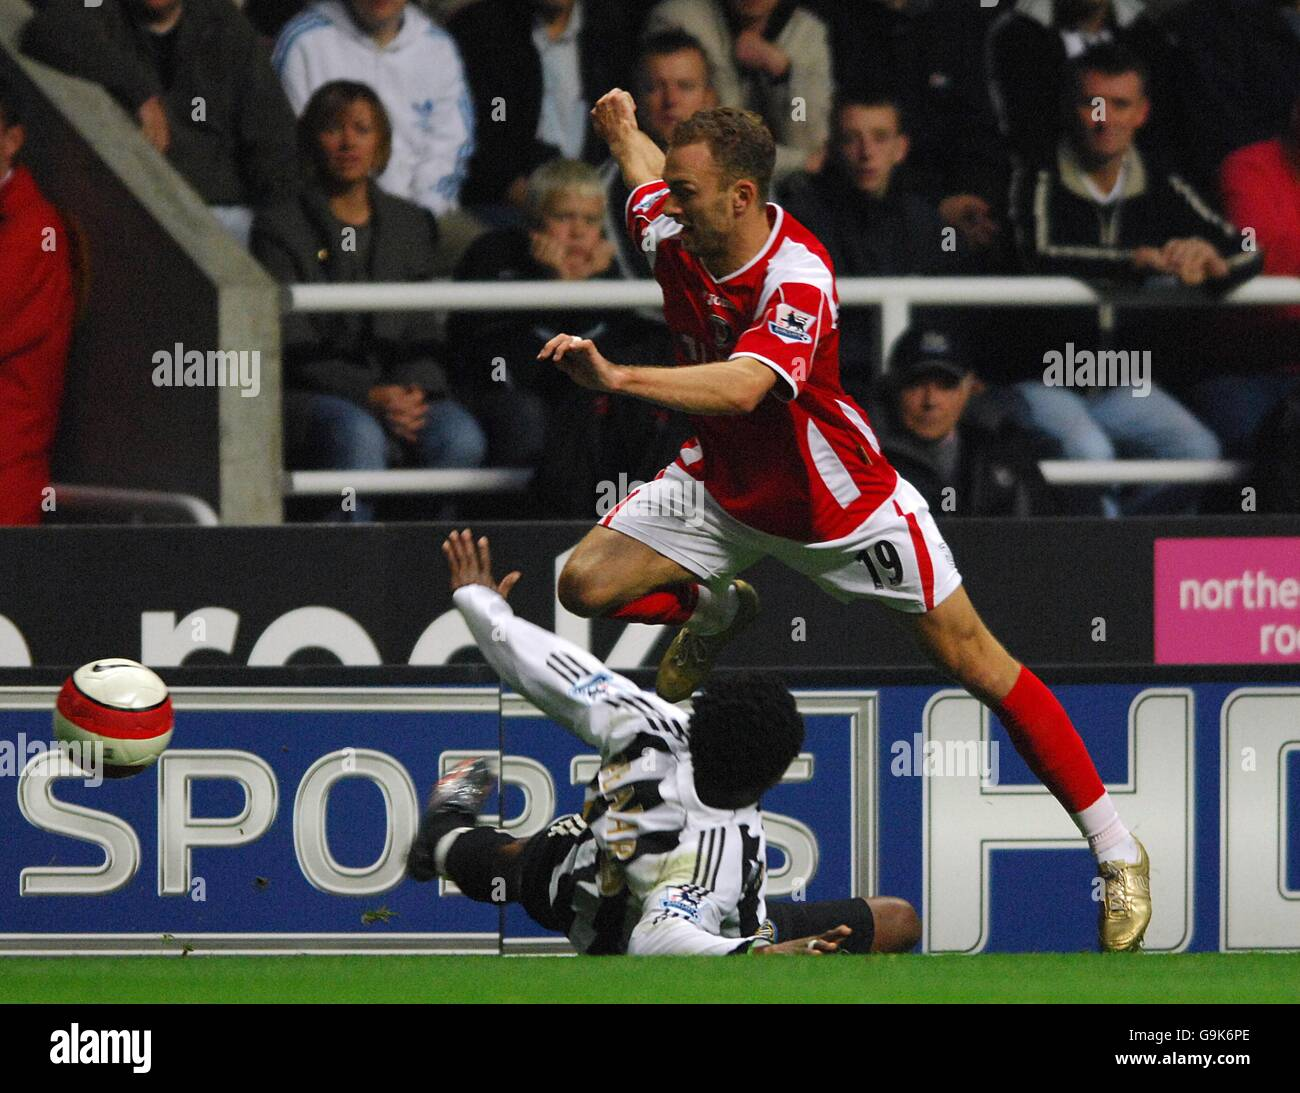 Soccer - FA Barclays Premiership - Newcastle United v Charlton Athletic  - St James Park - Stock Image